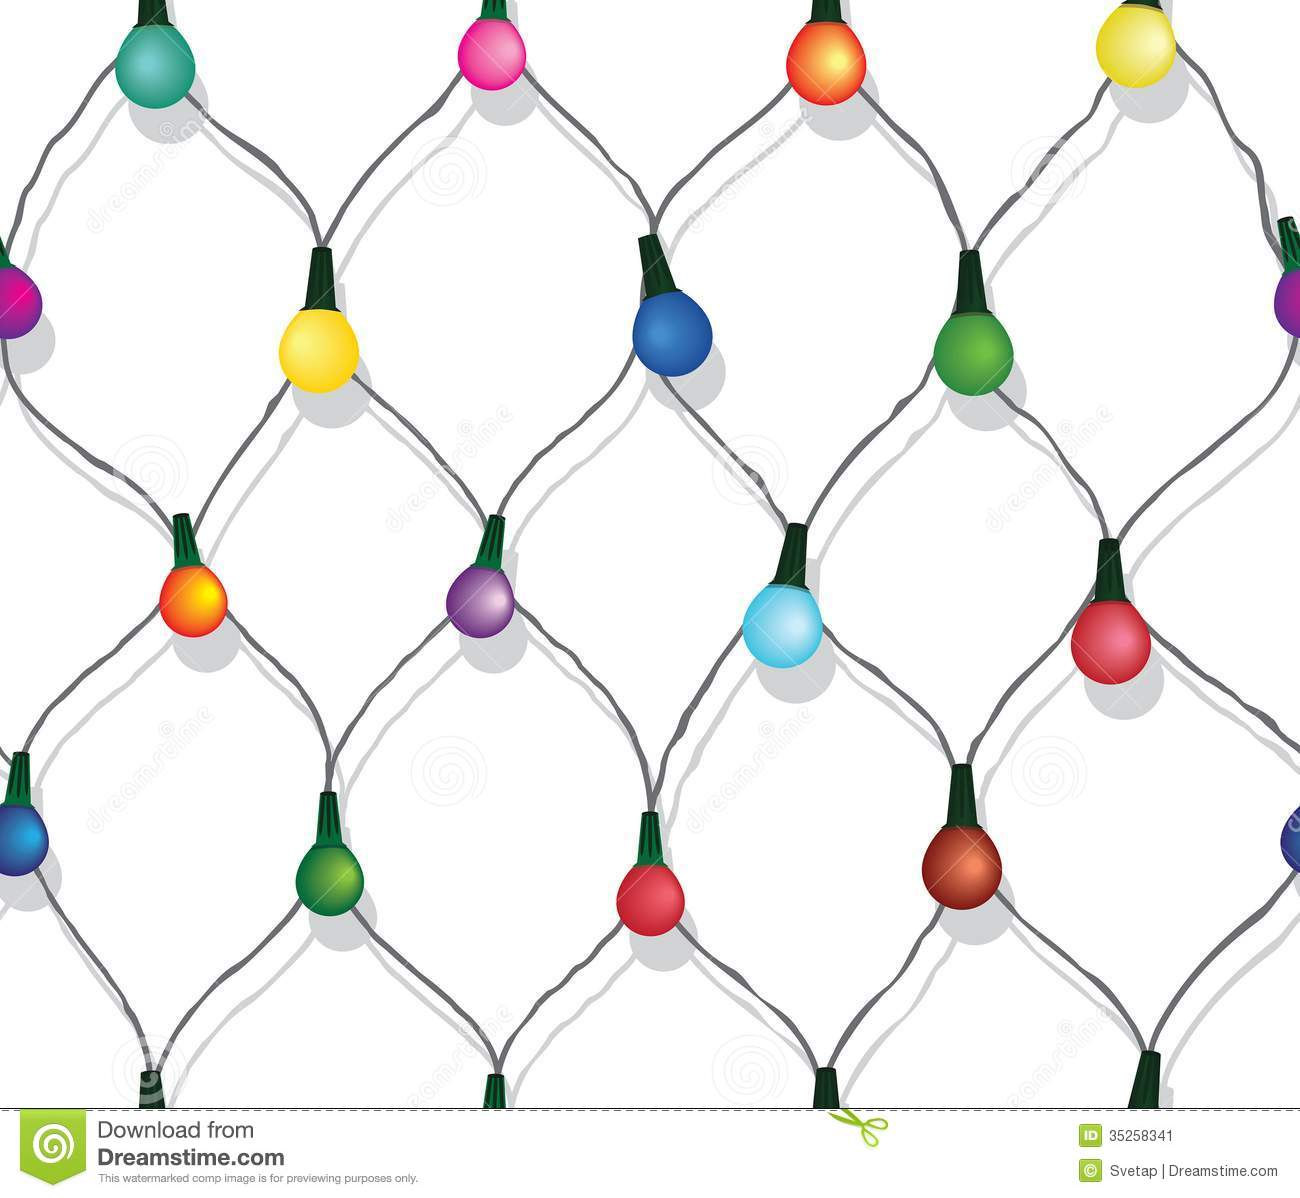 Christmas String Lights Background : Seamless String Of Christmas Lights Isolated On White Stock Vector - Image: 35258341